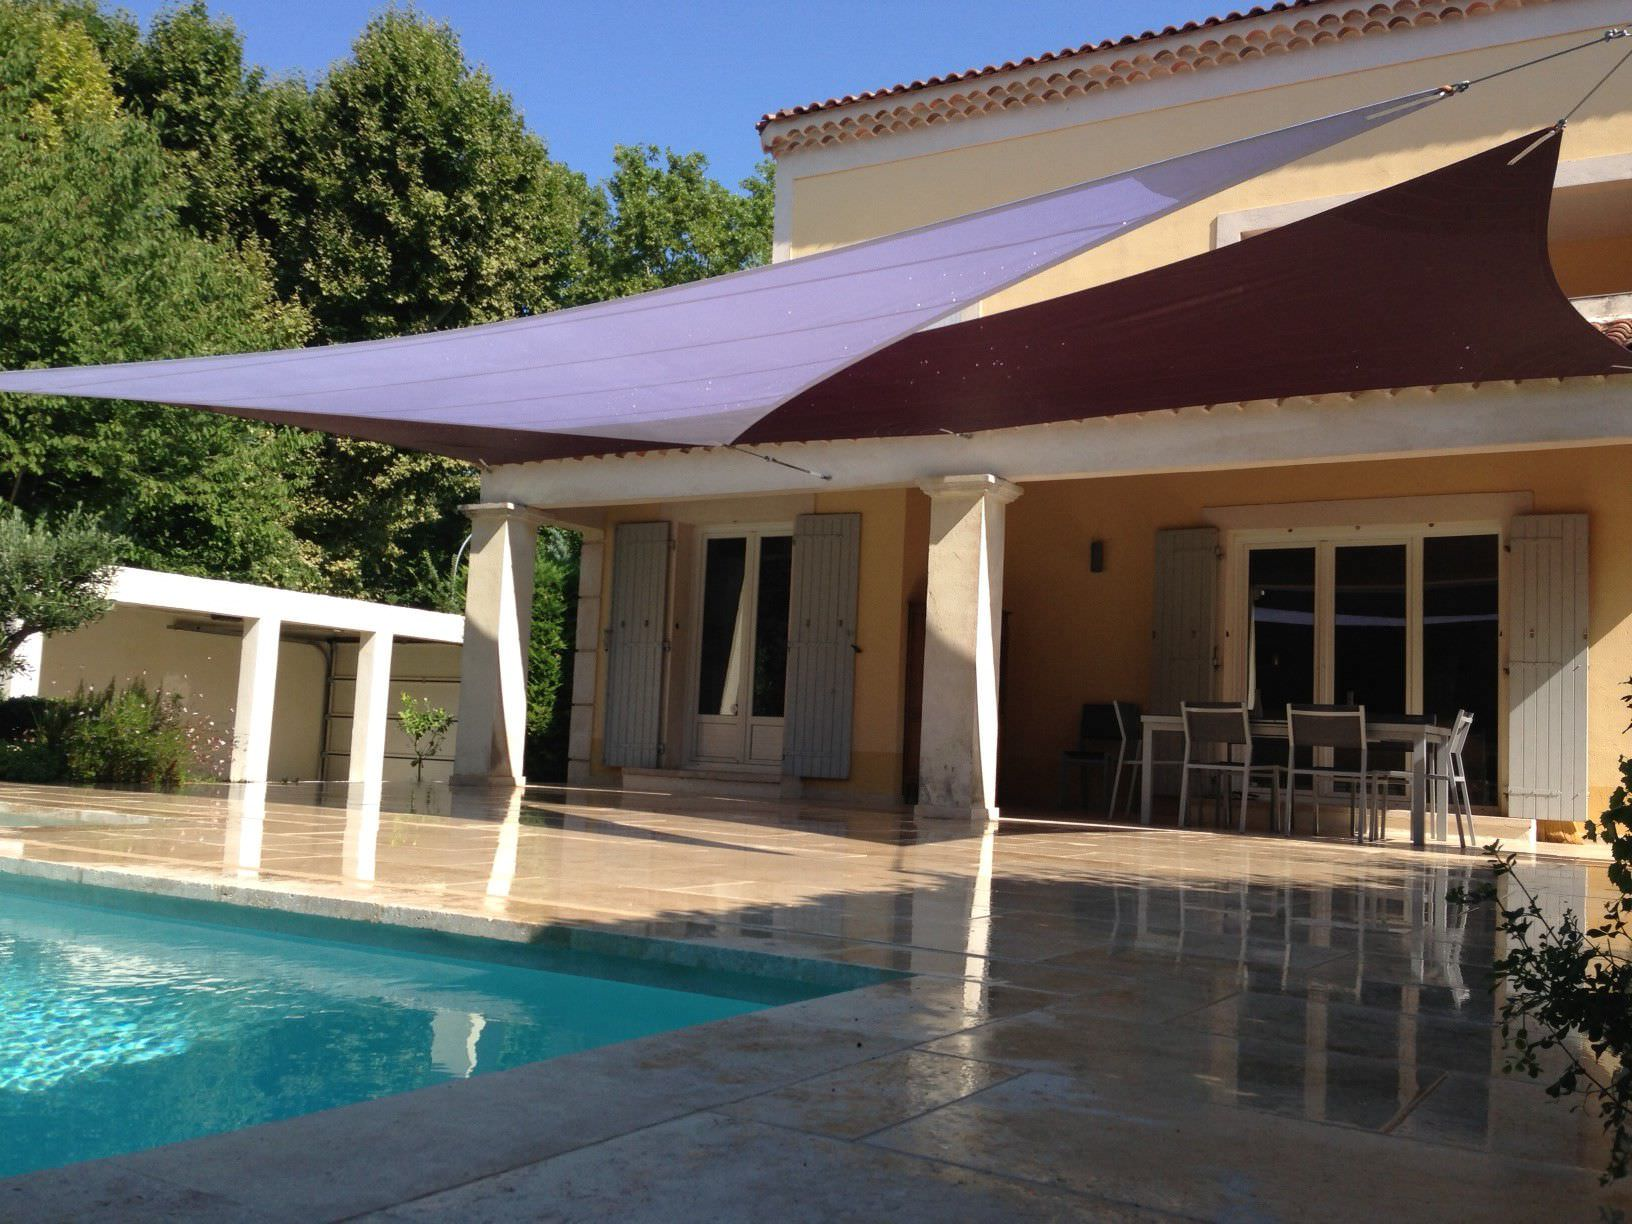 Filet Ombrage Terrasse Voile D Ombrage Pour Terrasse Simple Les Voiles Duombrage